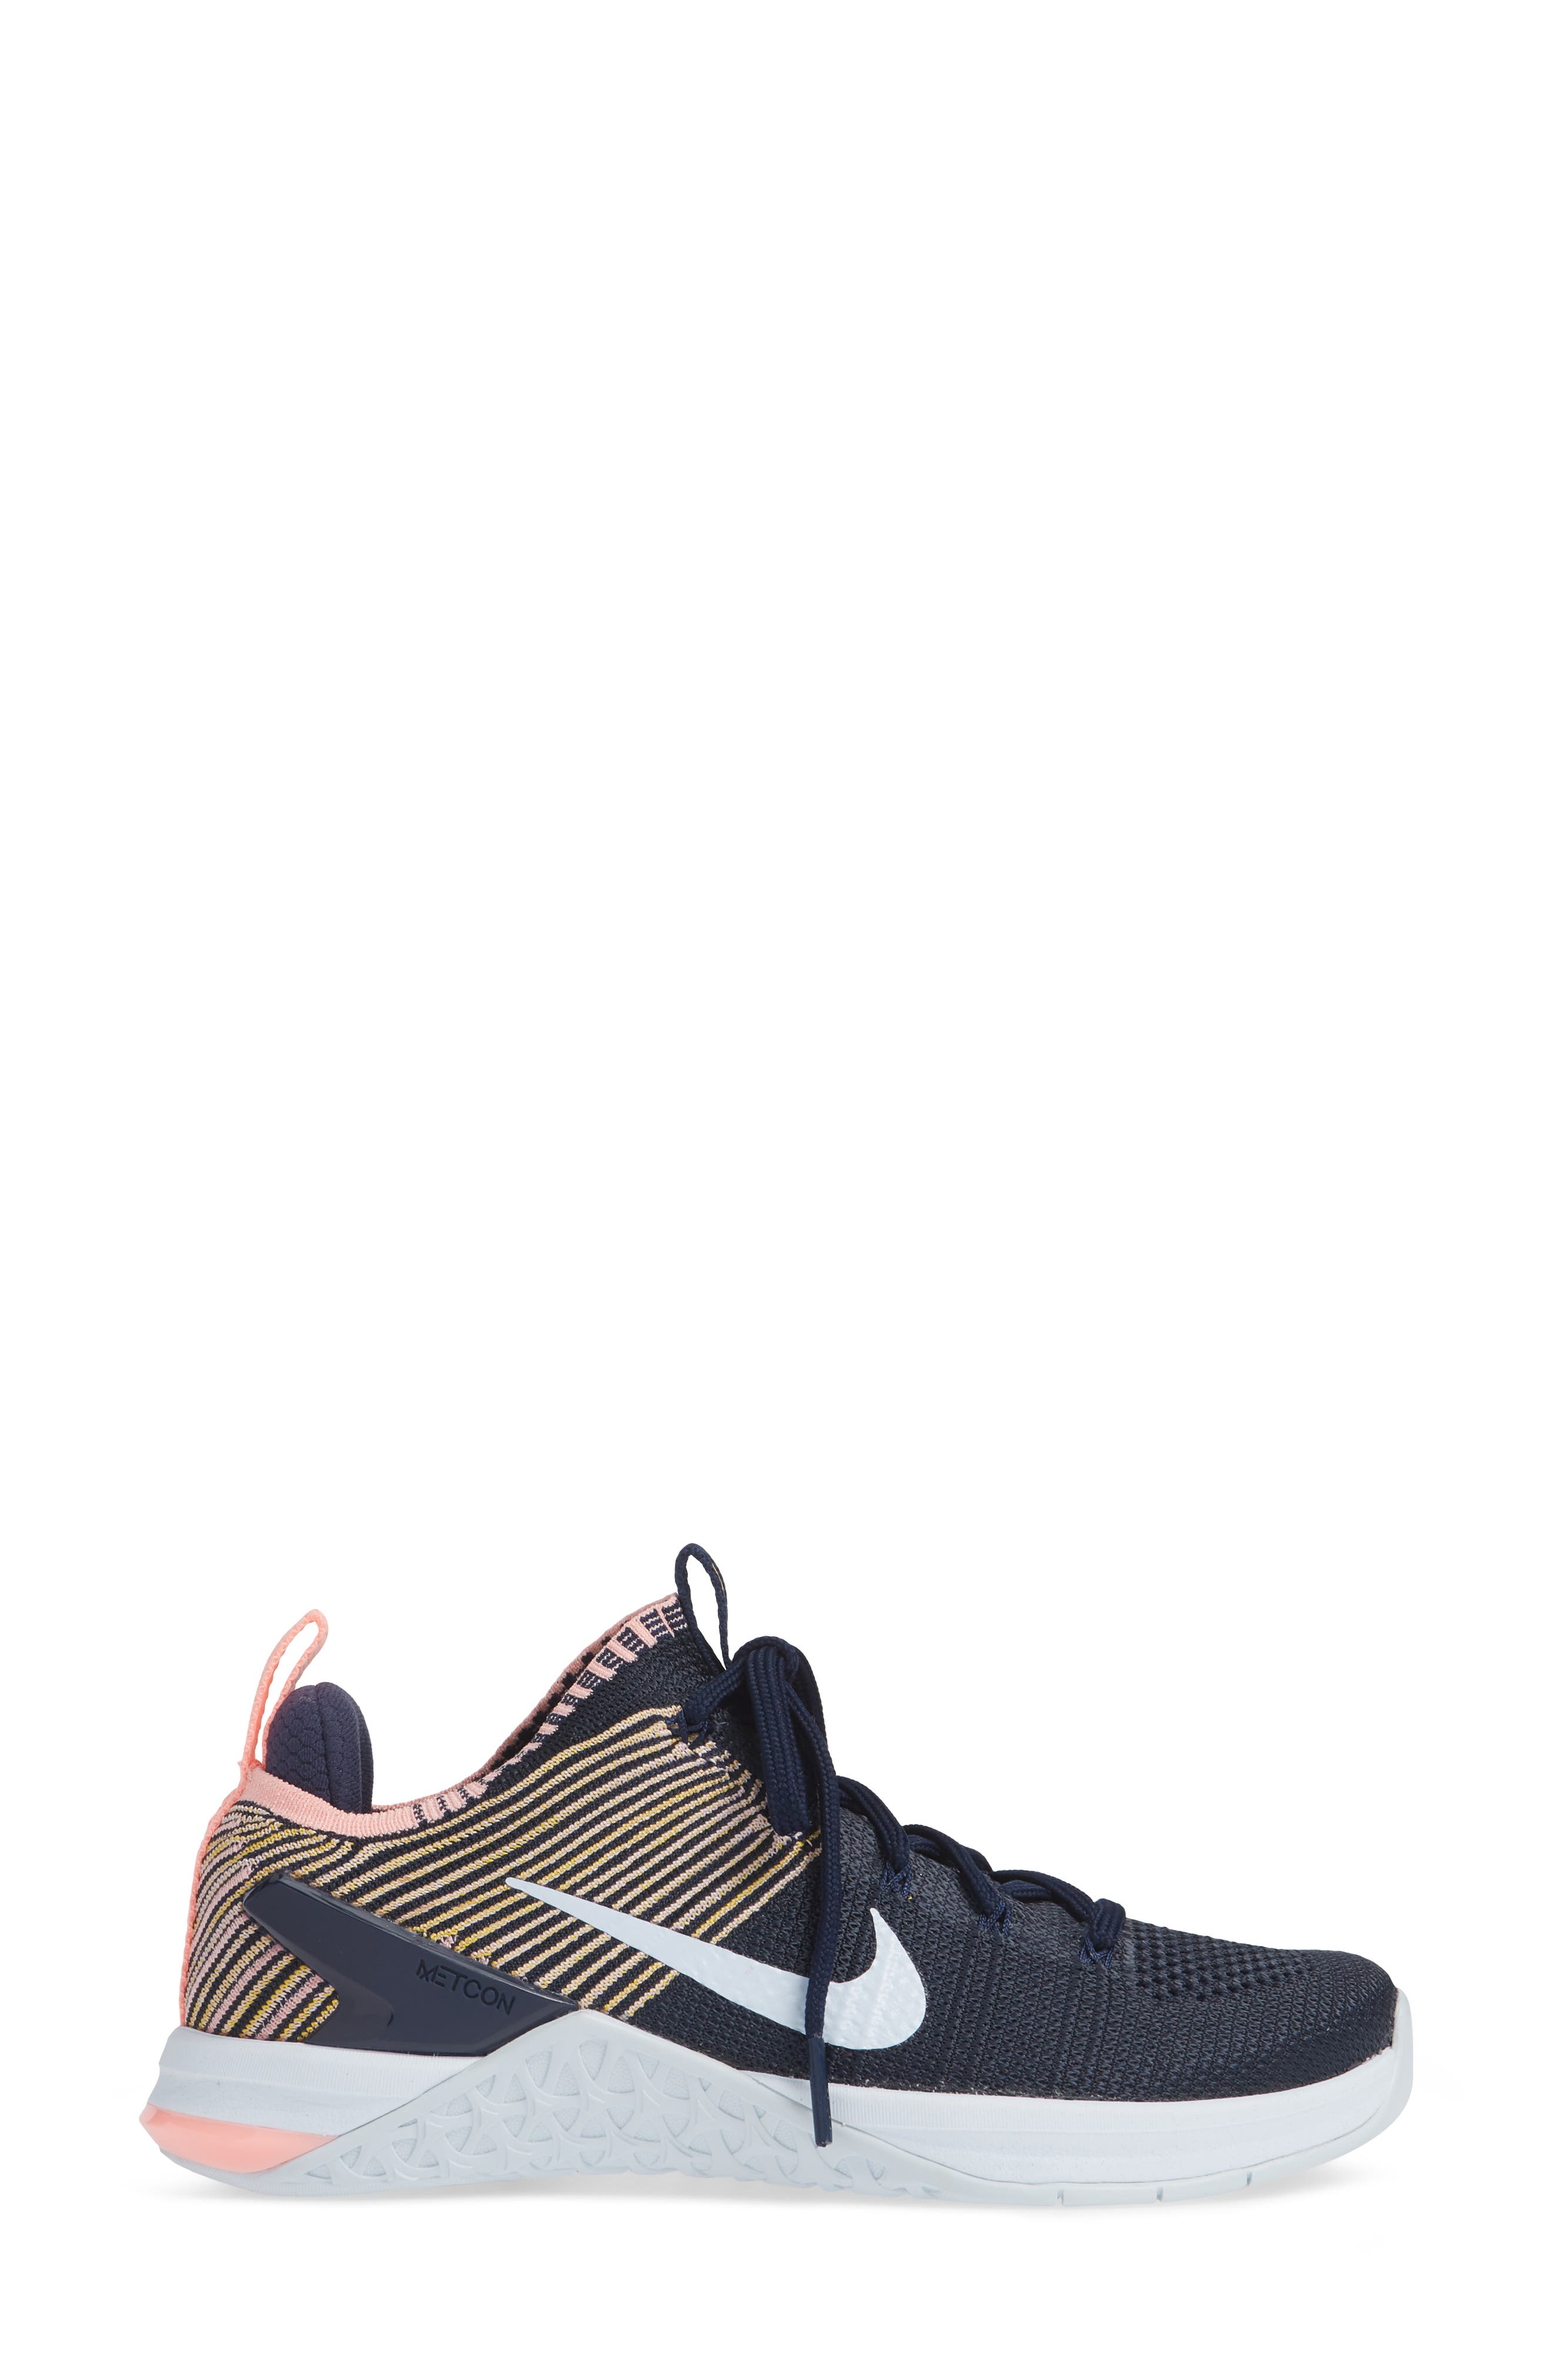 Metcon DSX Flyknit 2 Training Shoe,                             Alternate thumbnail 4, color,                             College Navy/ Blue Tint/ Pink